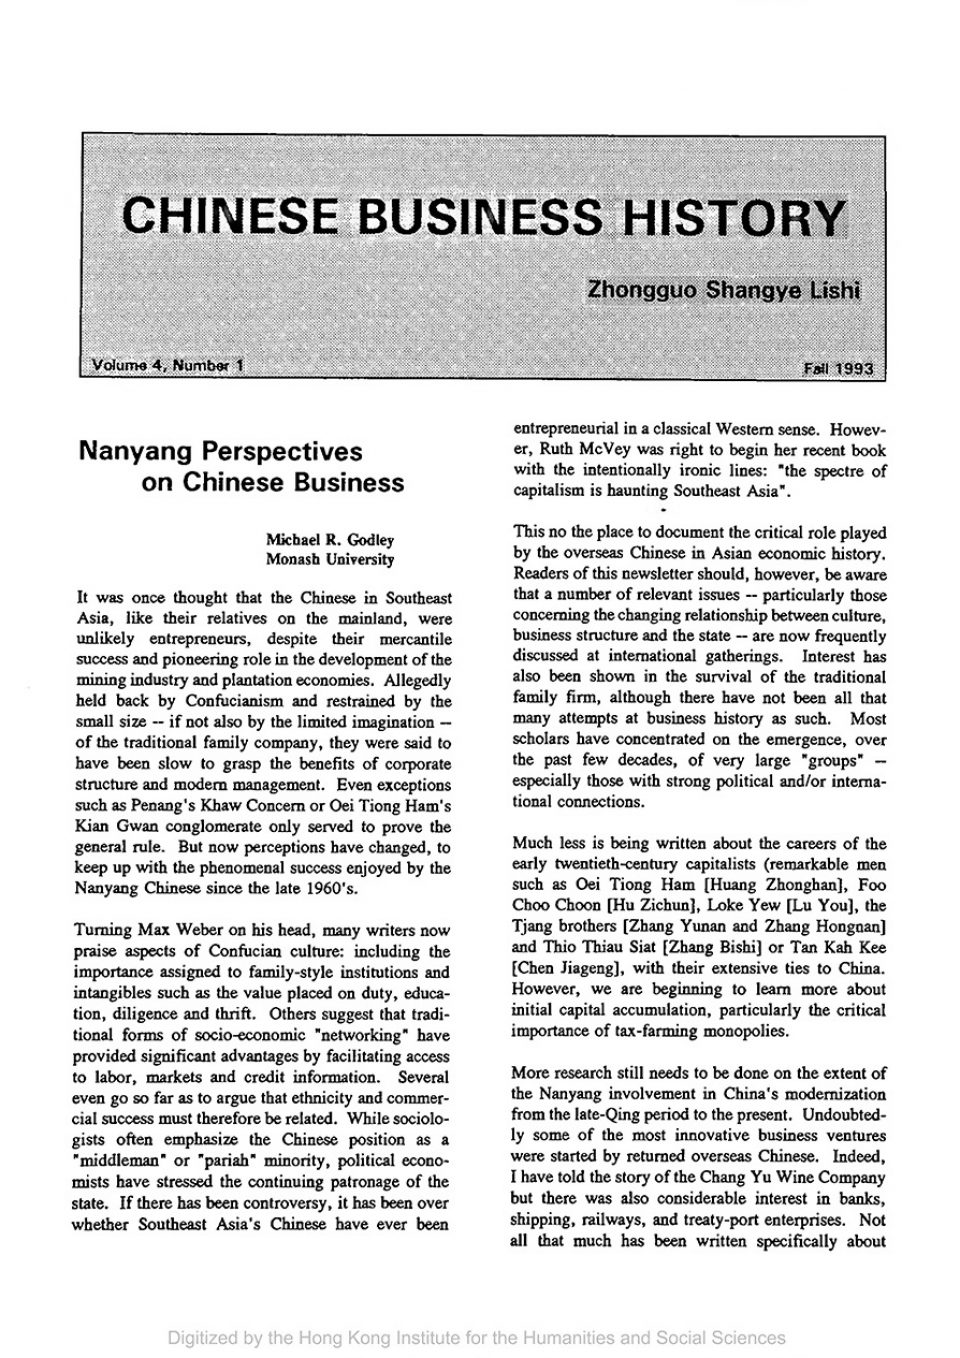 Cover of Chinese Business History Journal Volume 4, Number 1